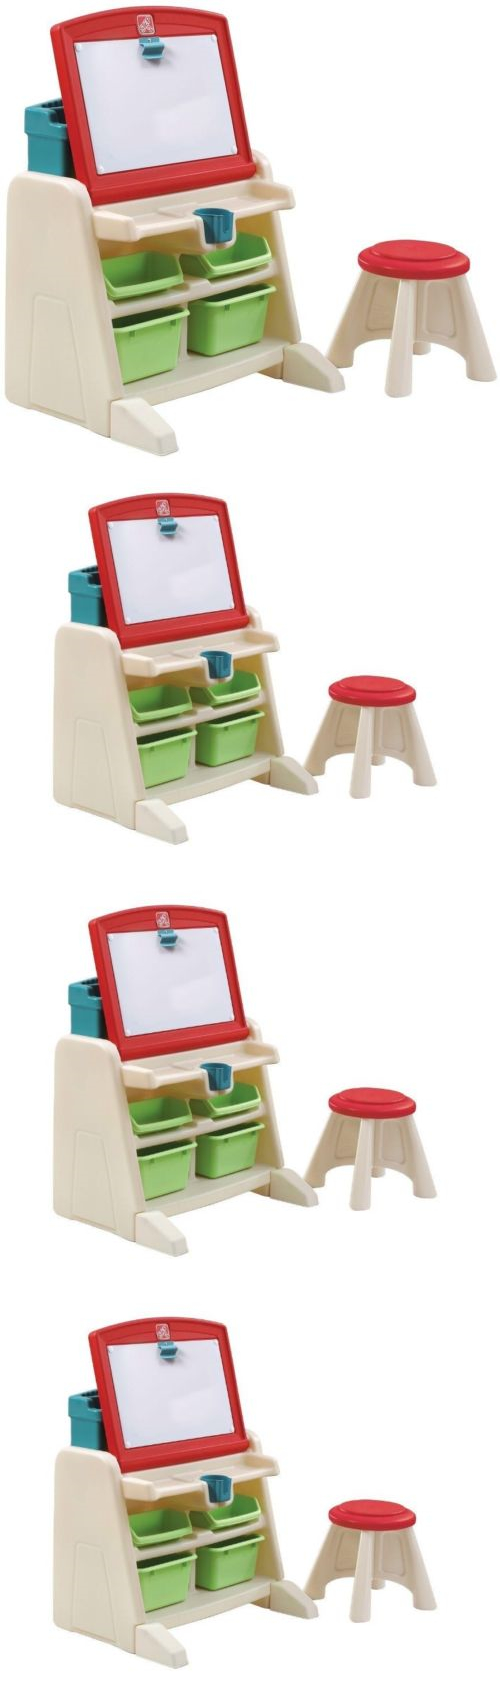 Step 2 52344: Kids Activity Center Flip Doodle Easel Desk Stool Children  Education Set No